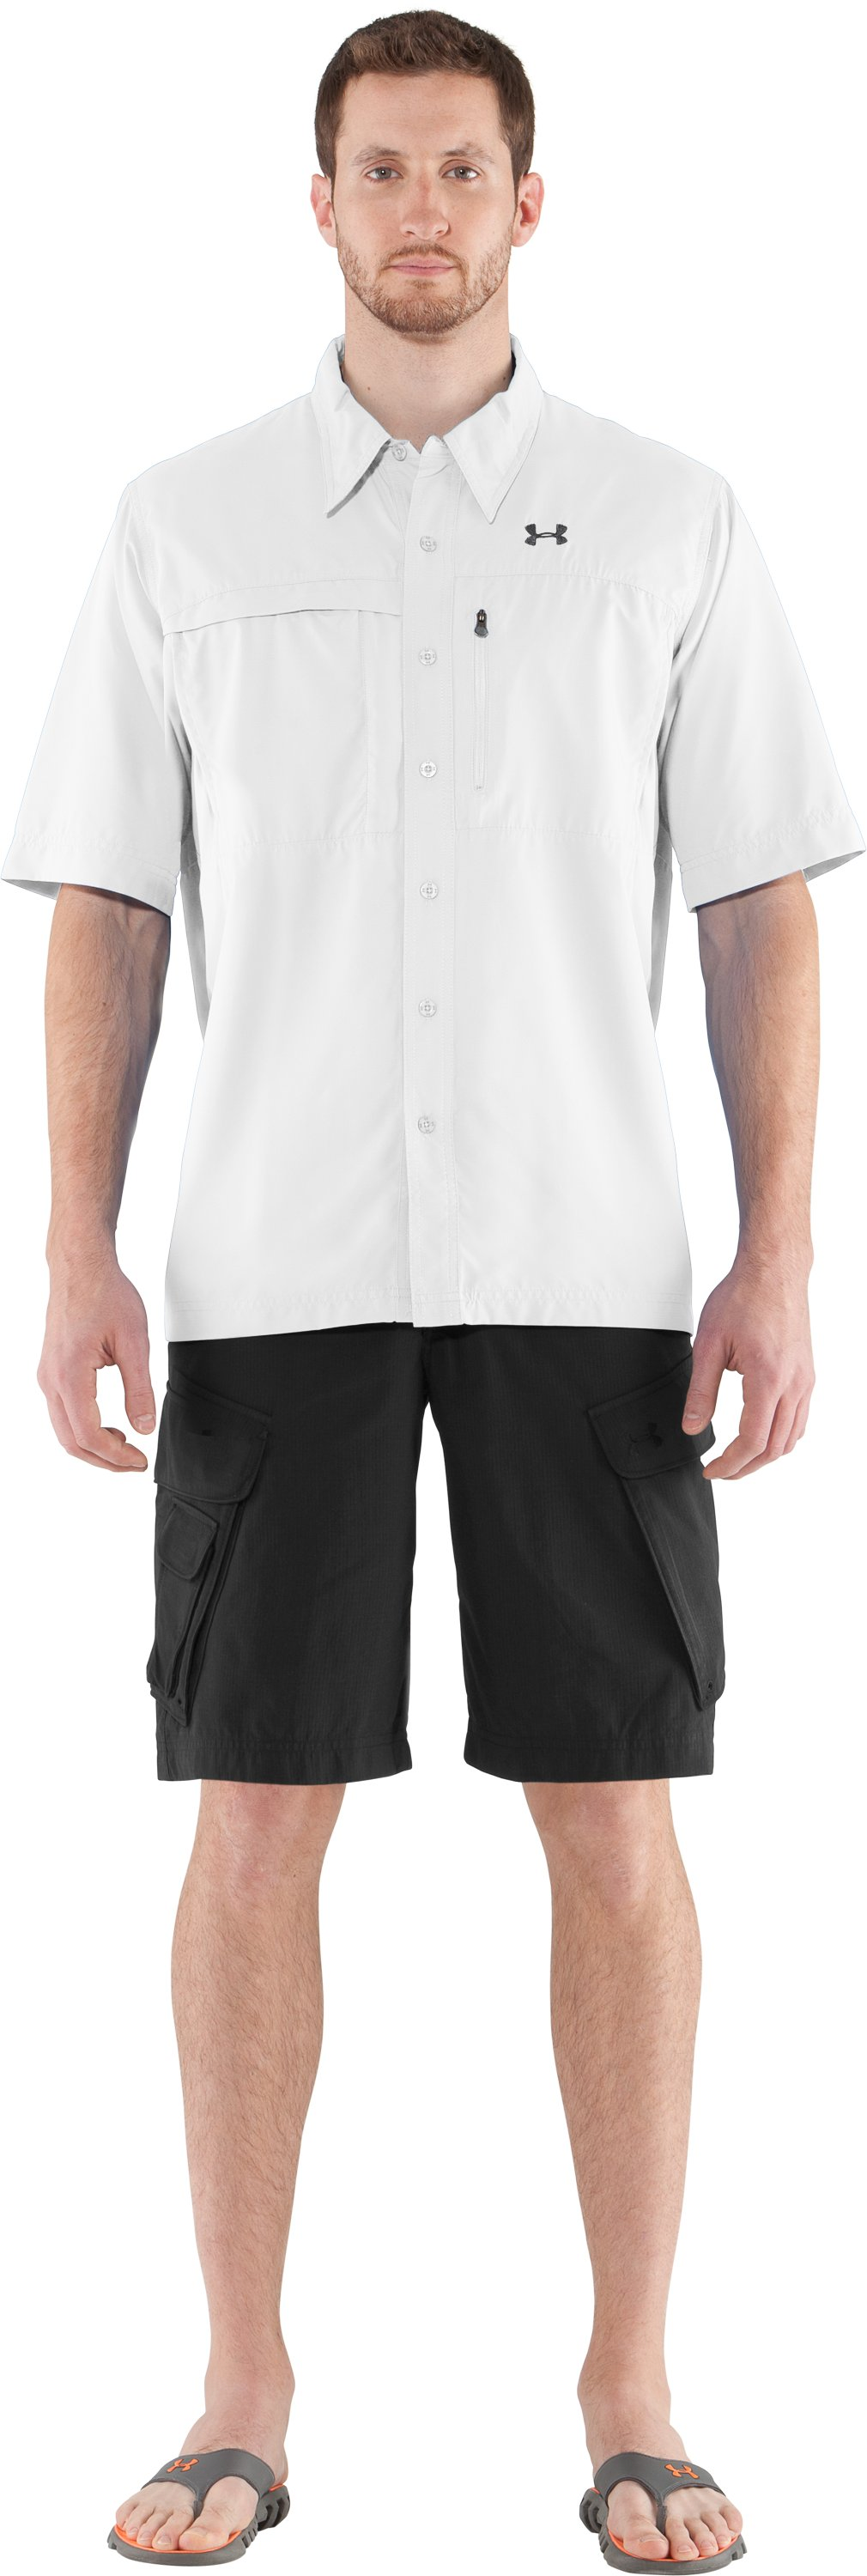 Men's Flats Guide Short Sleeve Shirt, White, zoomed image